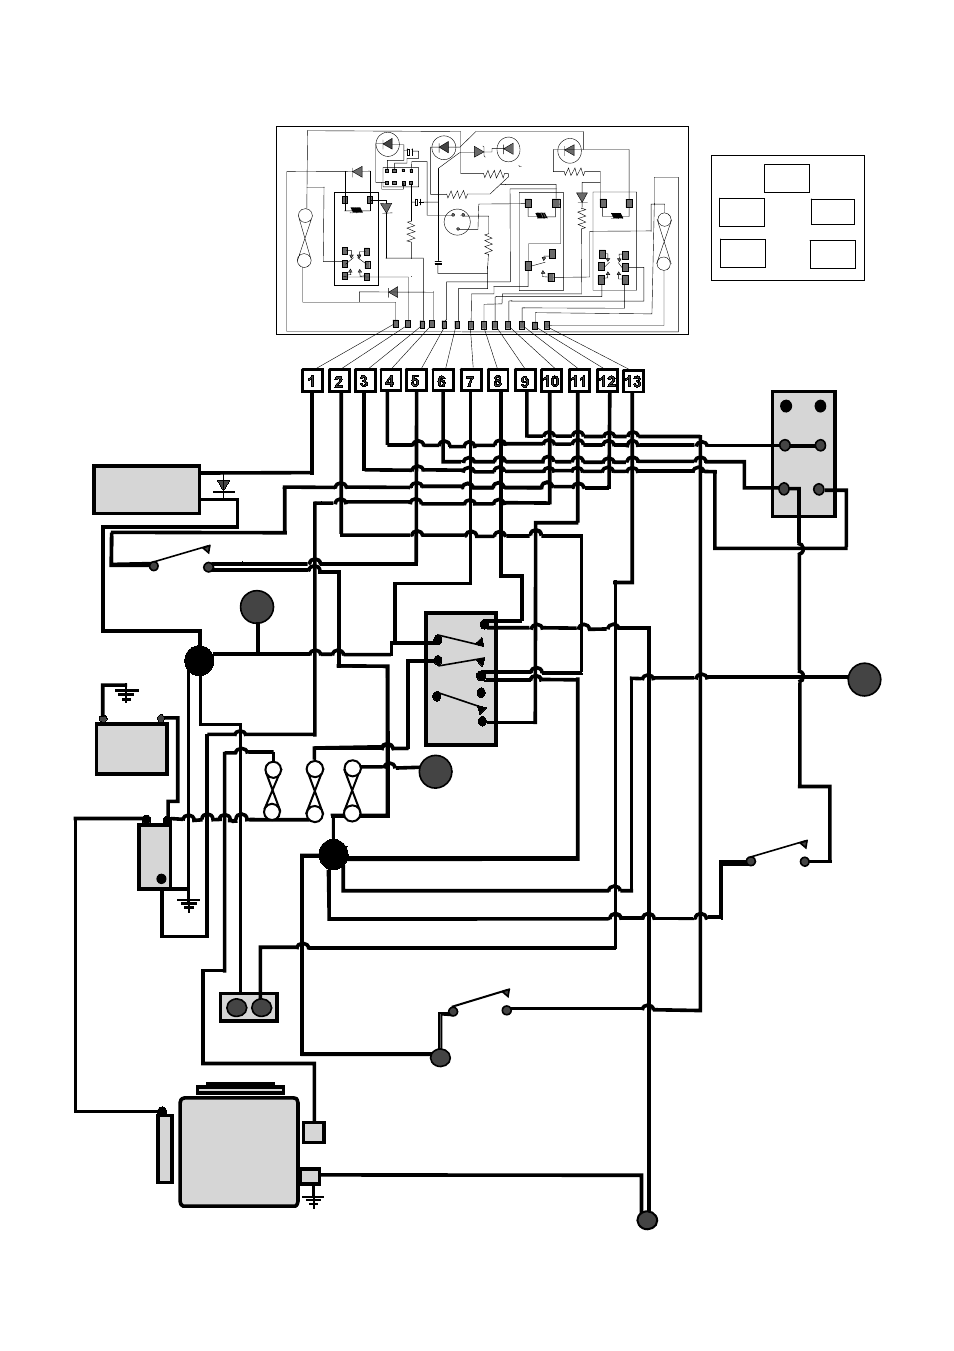 Tractor Wiring Diagram Countax Garden Tractor User